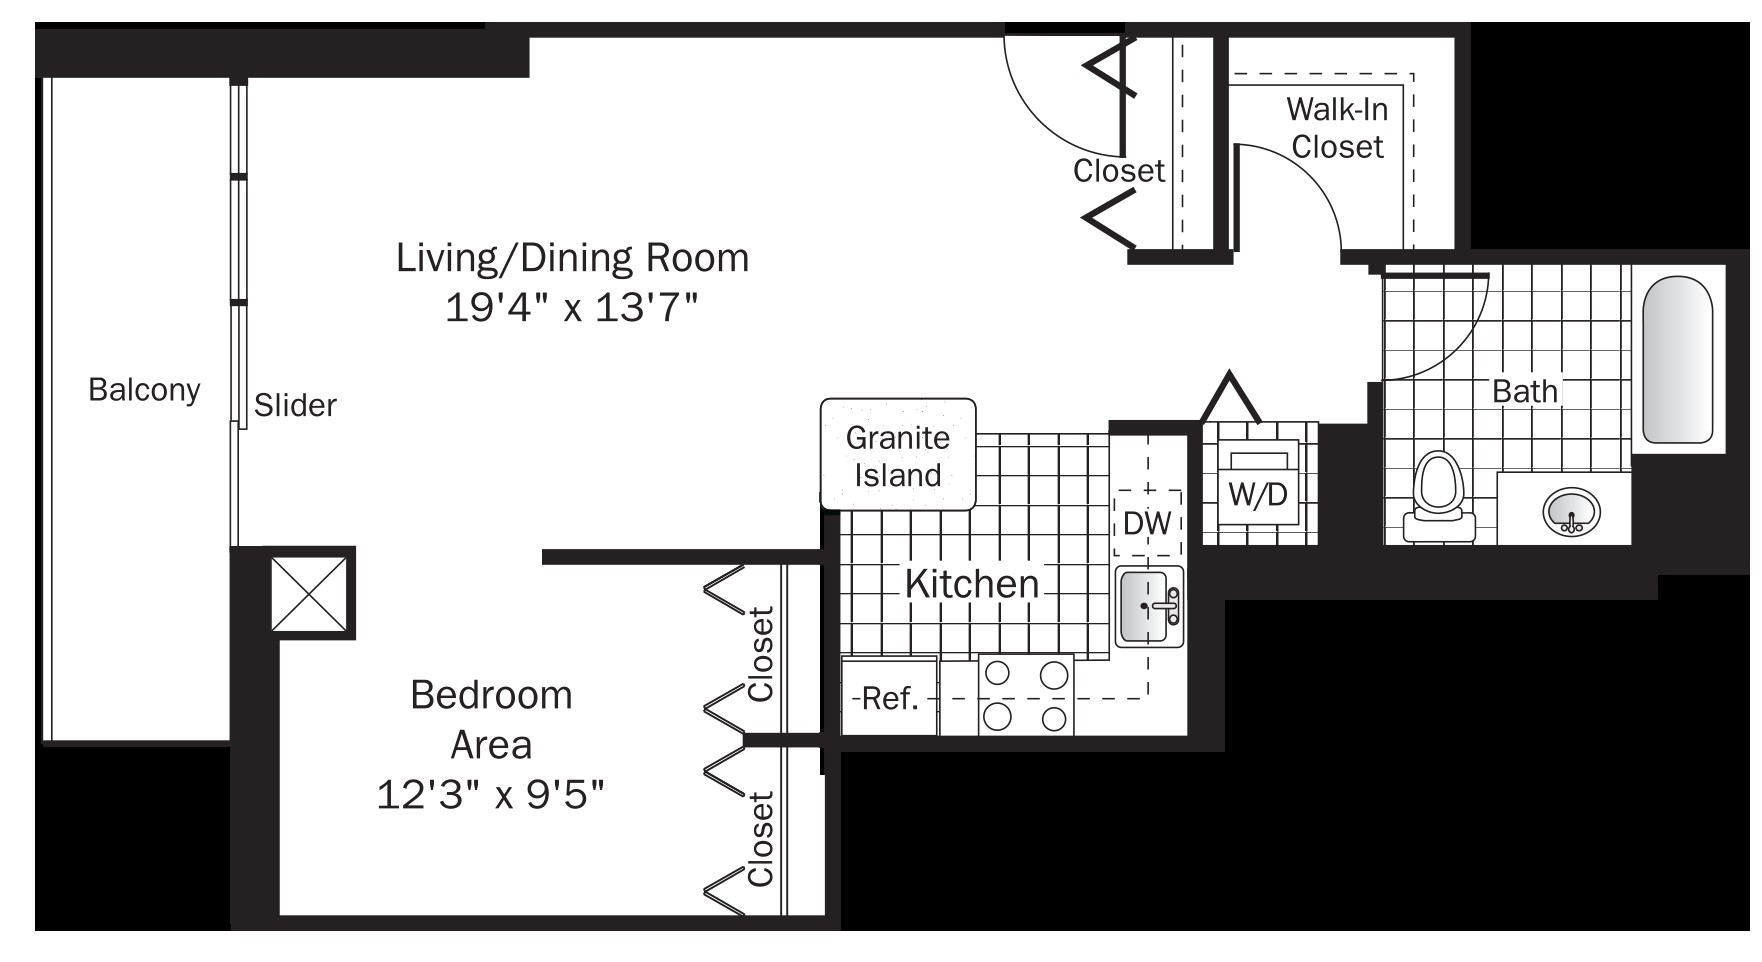 house of blues floor plan chicago